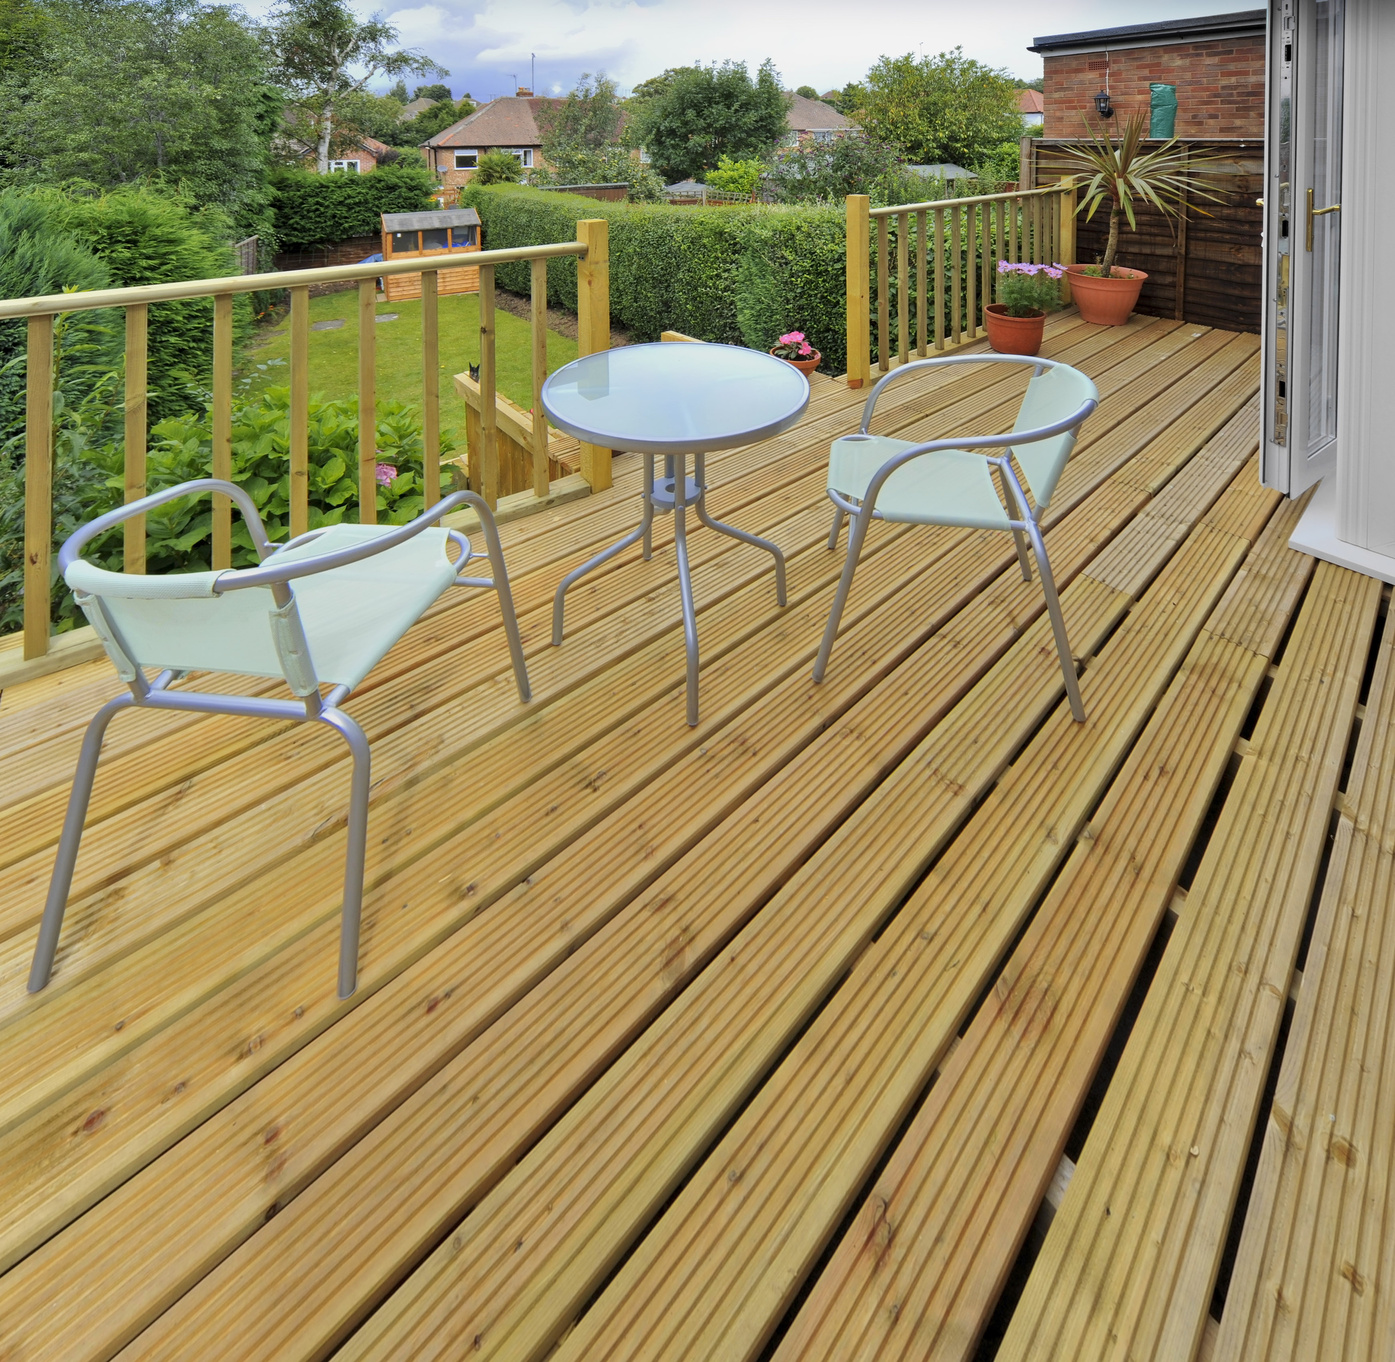 5 Reasons To Choose Modwood Decking Over Others